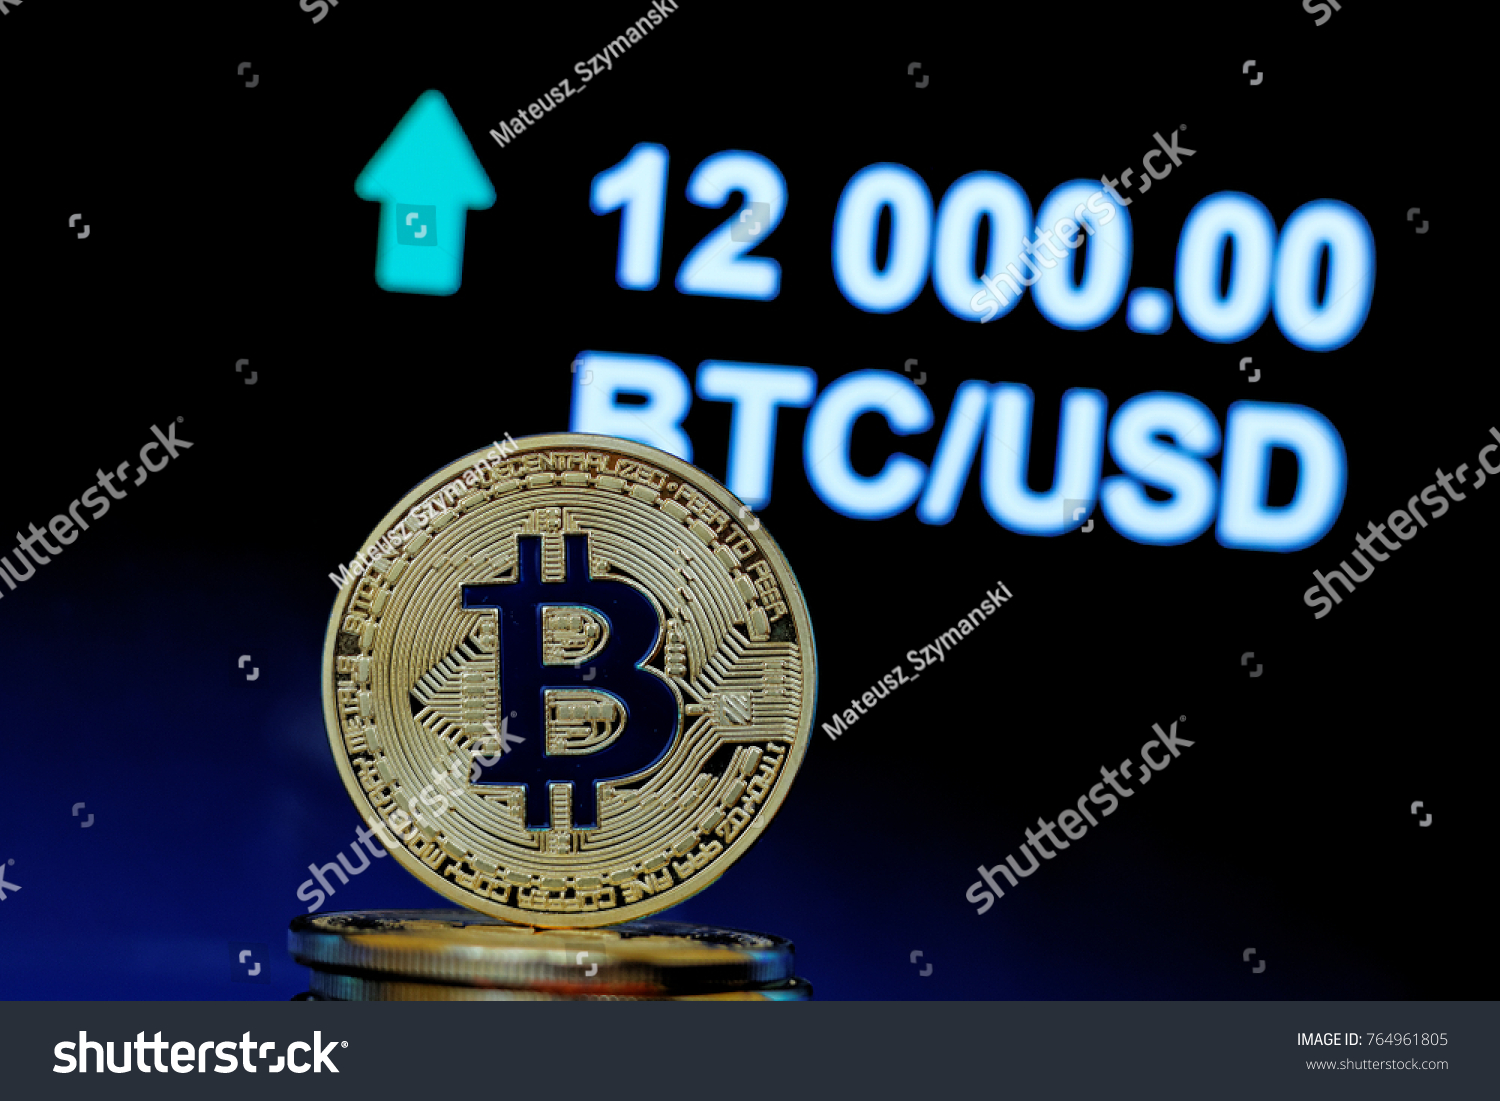 Concept bitcoin stock market price going stock photo 764961805 concept of bitcoin stock market price going up to twelve thousand us dollars 12000 biocorpaavc Images